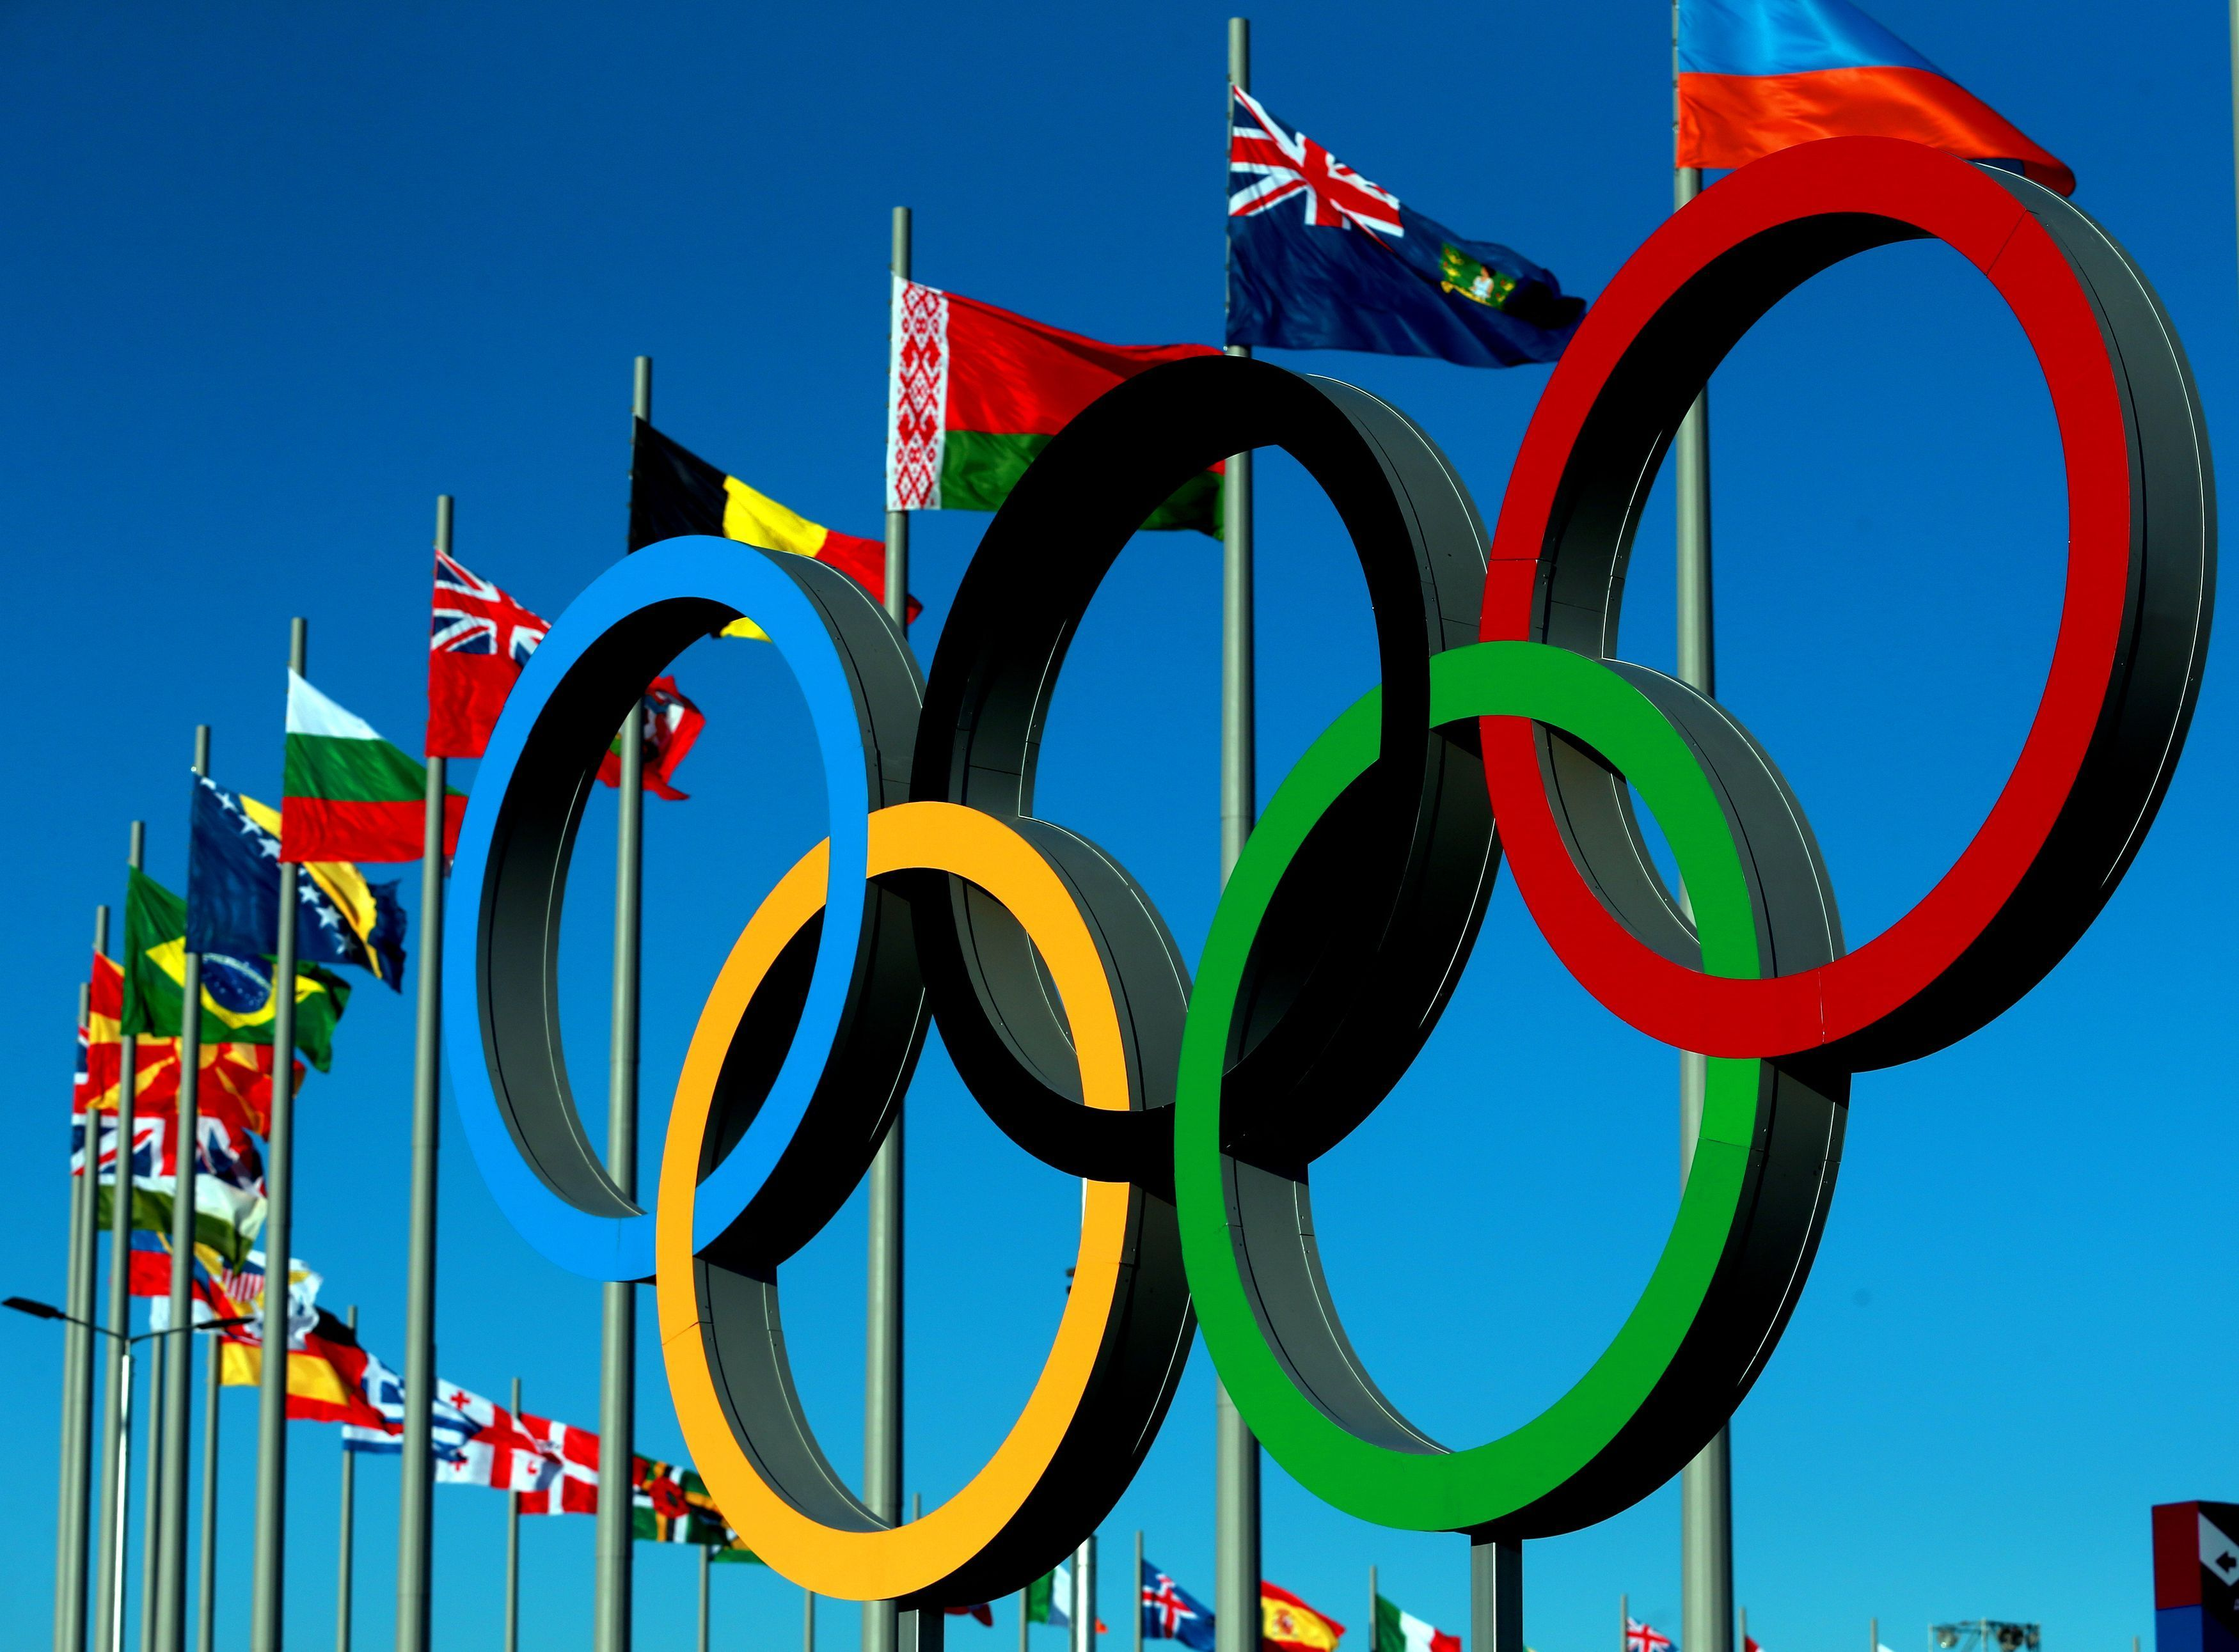 'Russia ban would be great loss to Olympic movement' - PKKH.tv